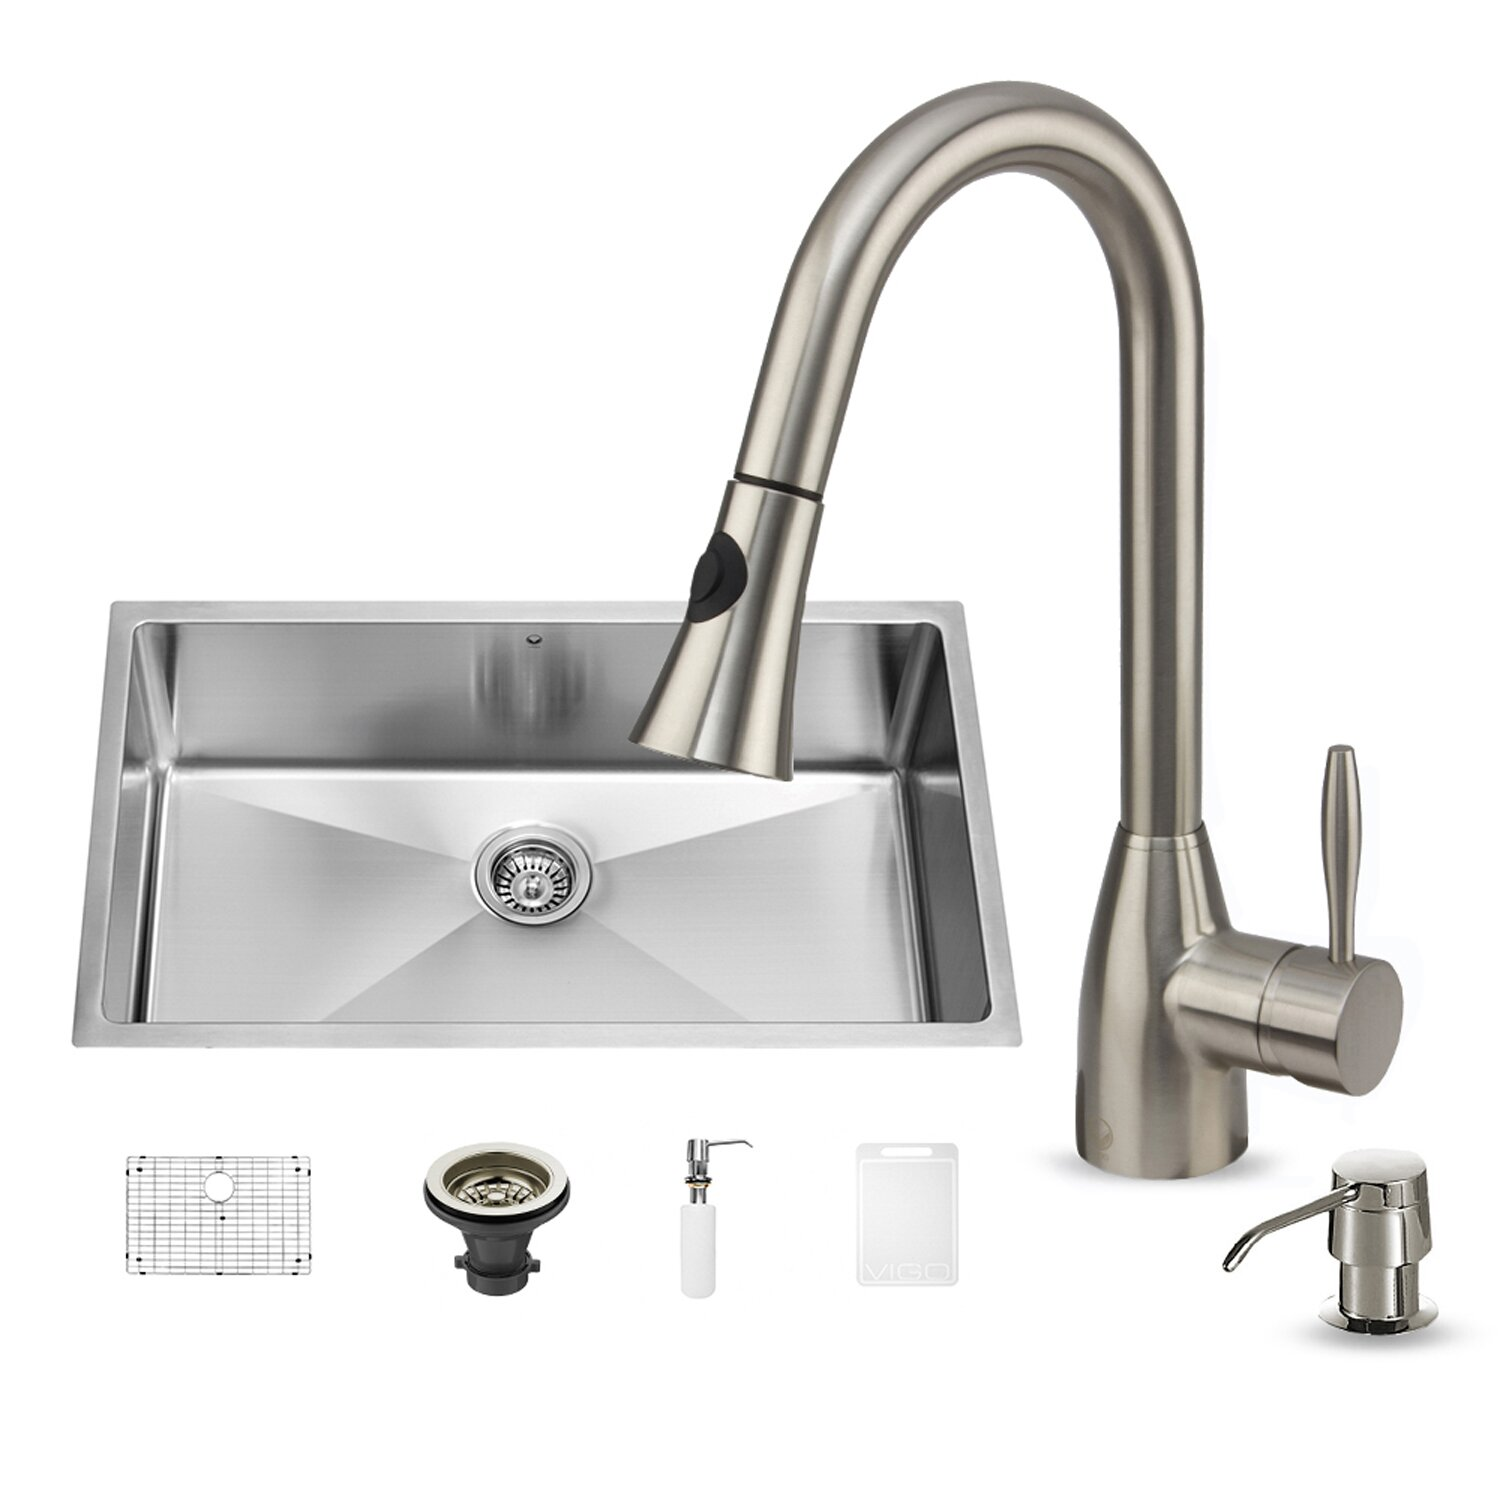 soap dispenser for kitchen sink cal flame stainless steel sink